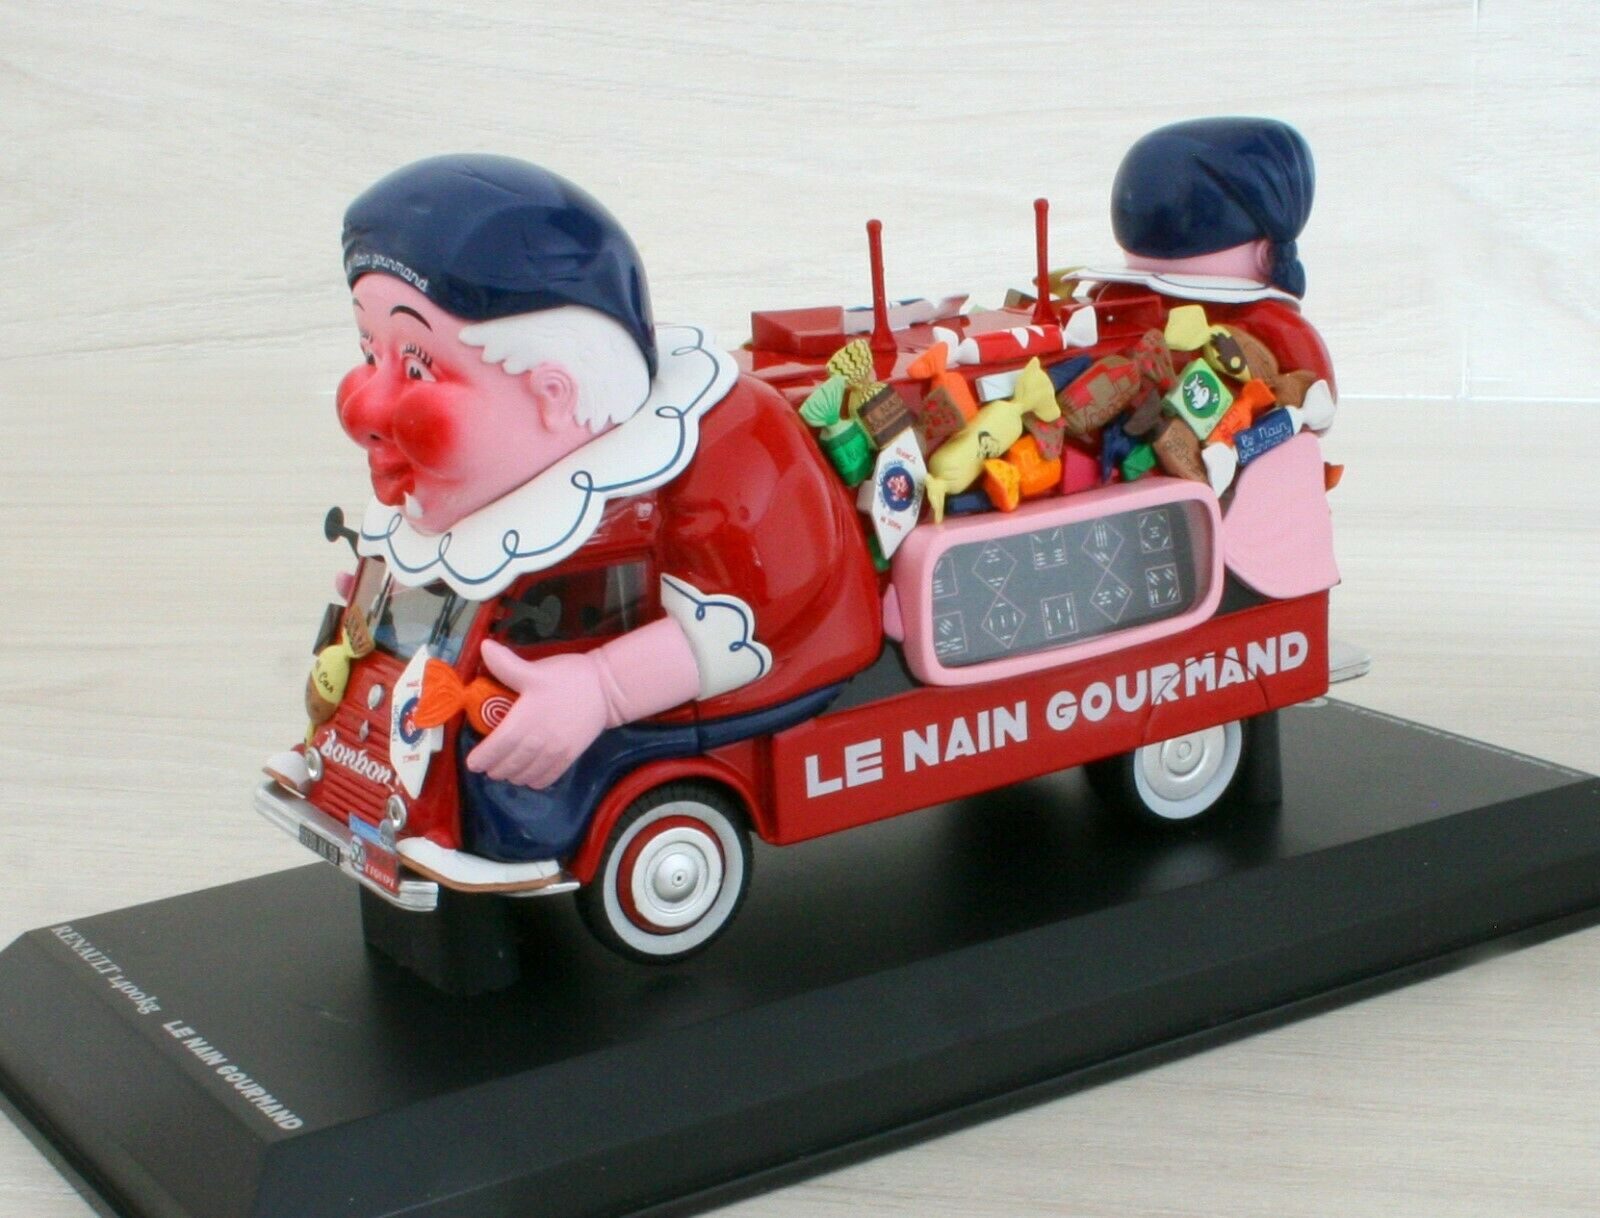 RENAULT 1400 kg 1952 - LE NAIN GOURMAND - PROVENCE MOULAGE   NOREV - 1 43